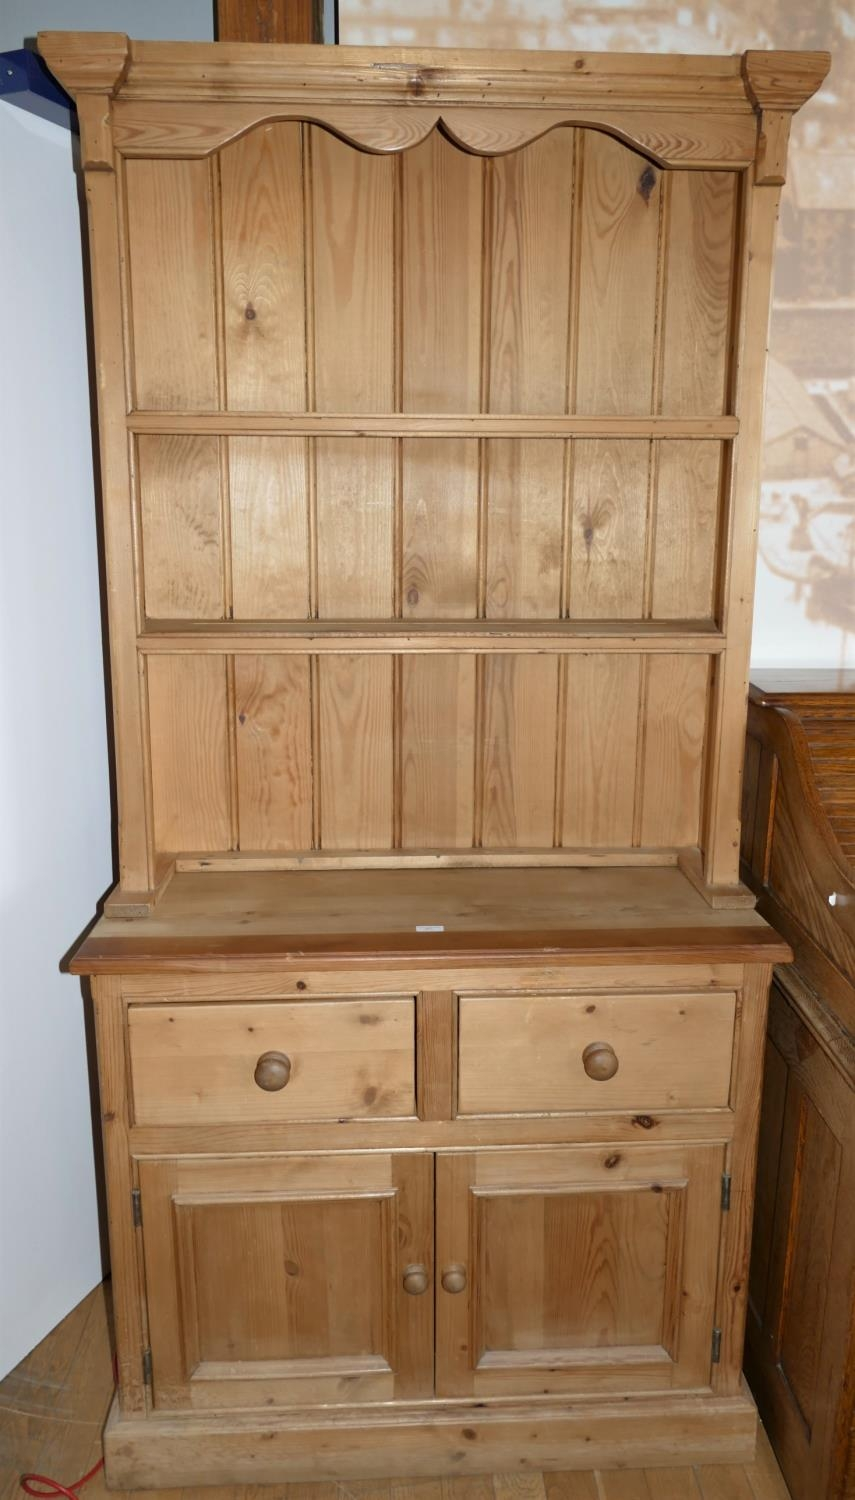 A traditional pine dresser, the base having two drawers between two cupboards with turned wooden